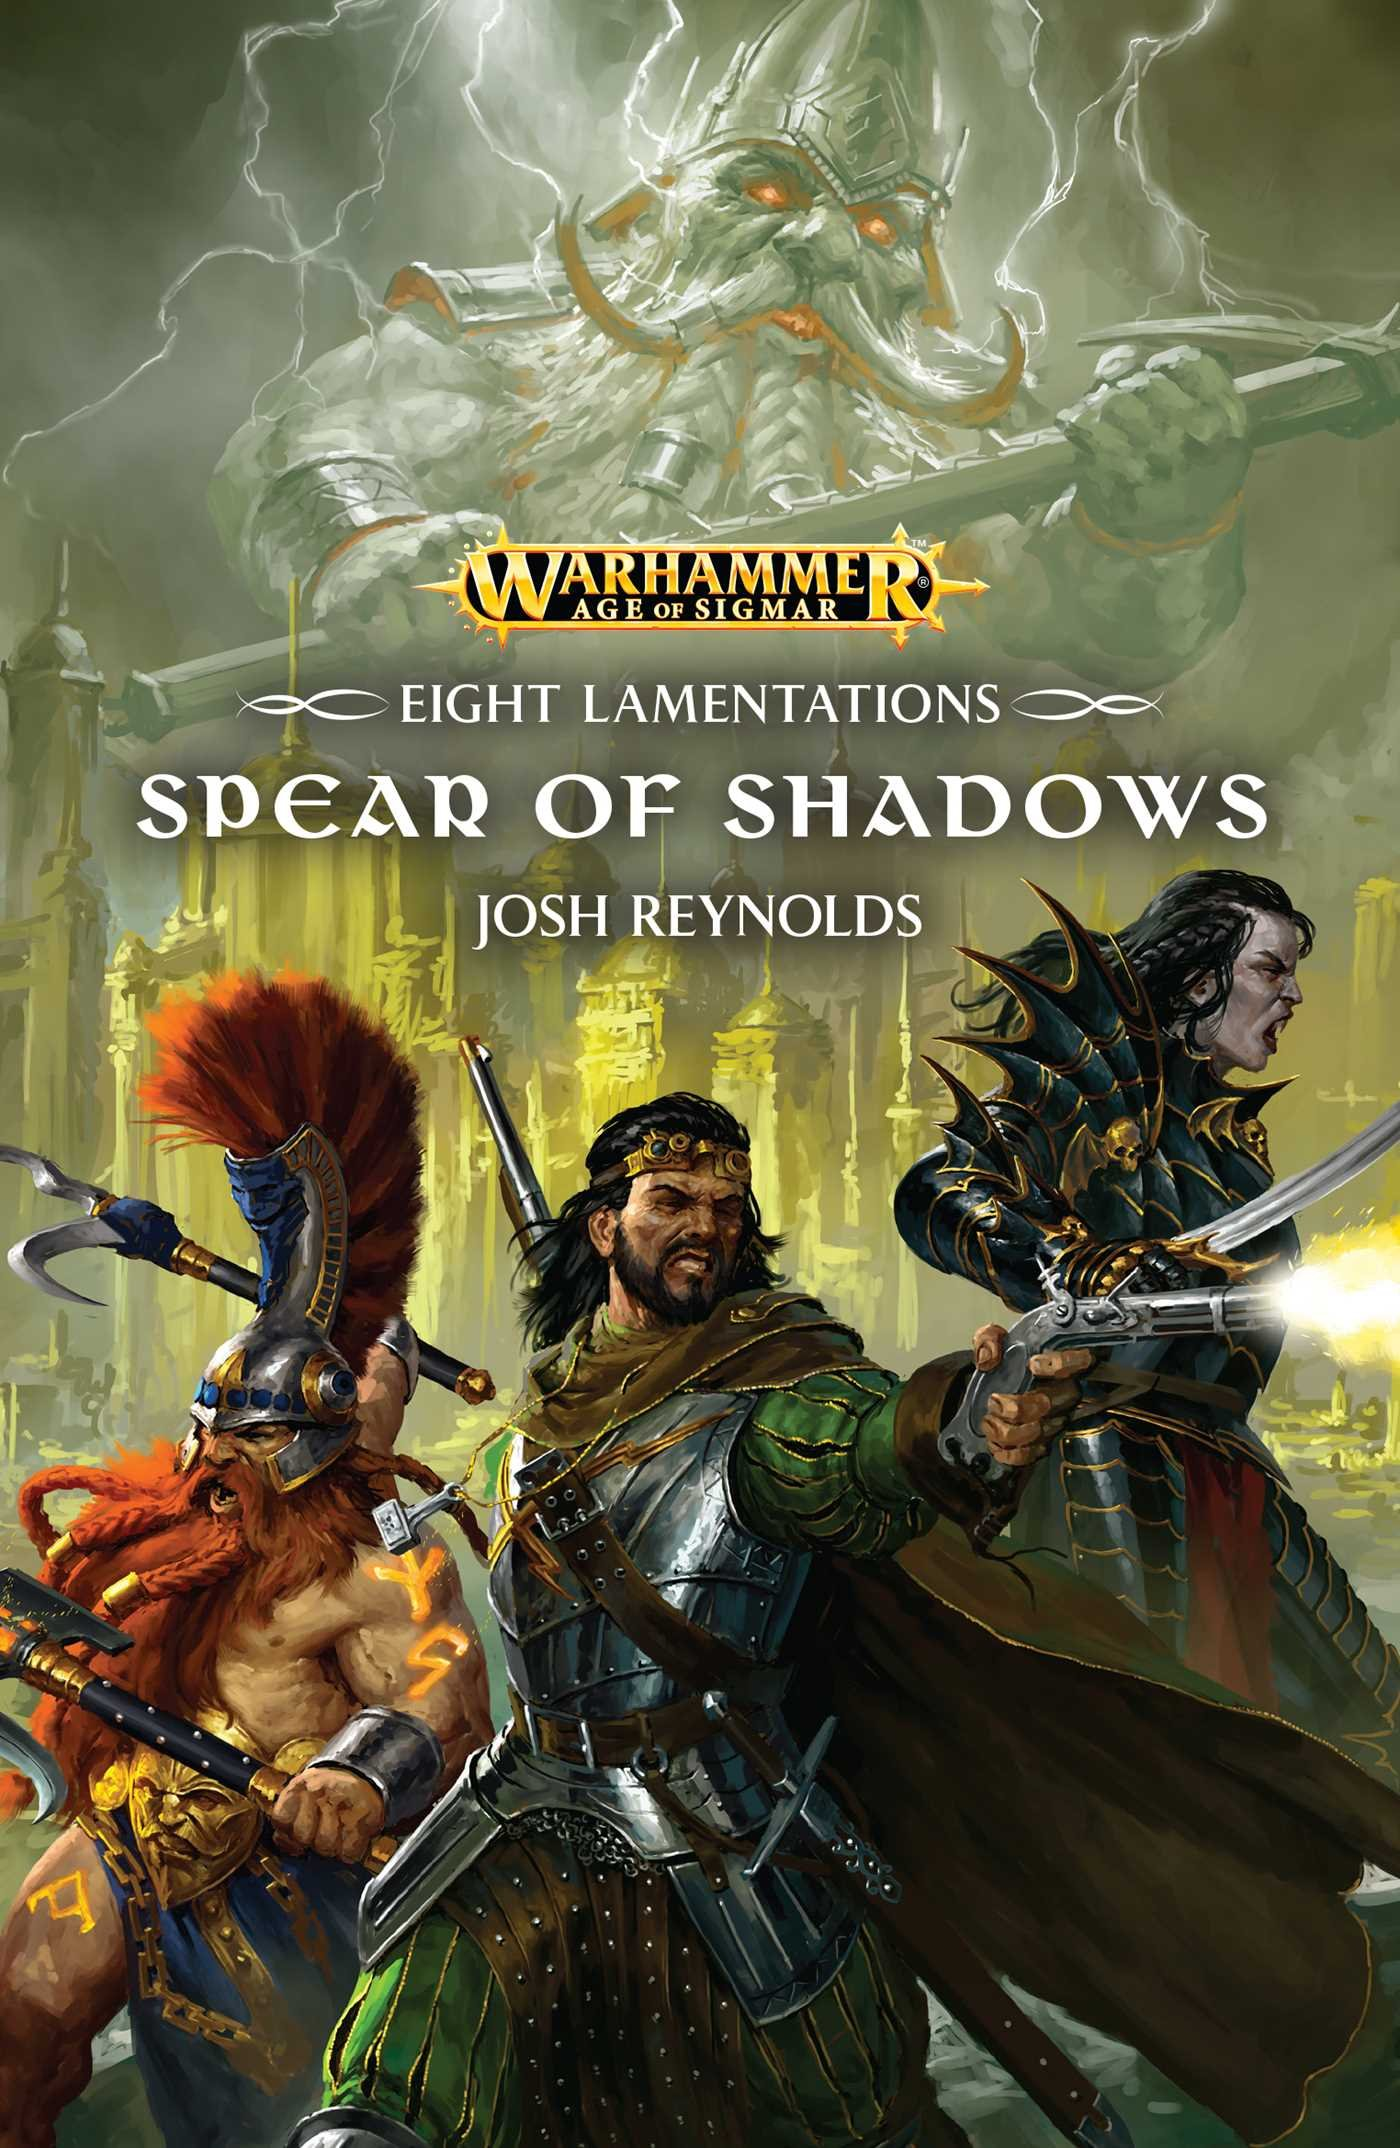 Download The Spear of Shadows (Eight Lamentations) pdf